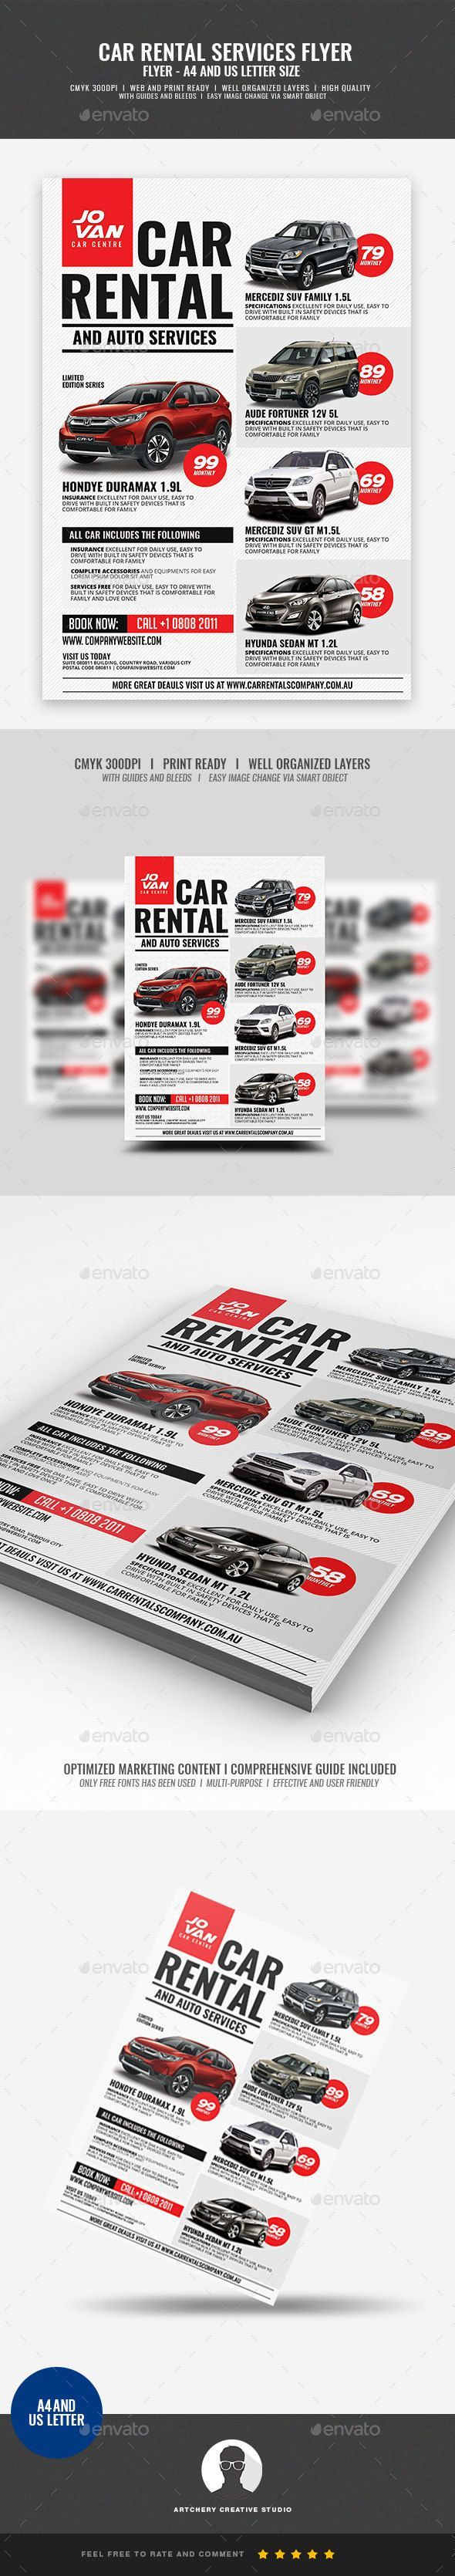 Car Rental and Services Flyer Design Template Boost your company¡¯s sales and attract new customers! This Car Rental and Services Flyer Design Template have been developed to boost your Ultimate Marketing strategy and brand/product awareness, Perfect for large #CarRentalTips